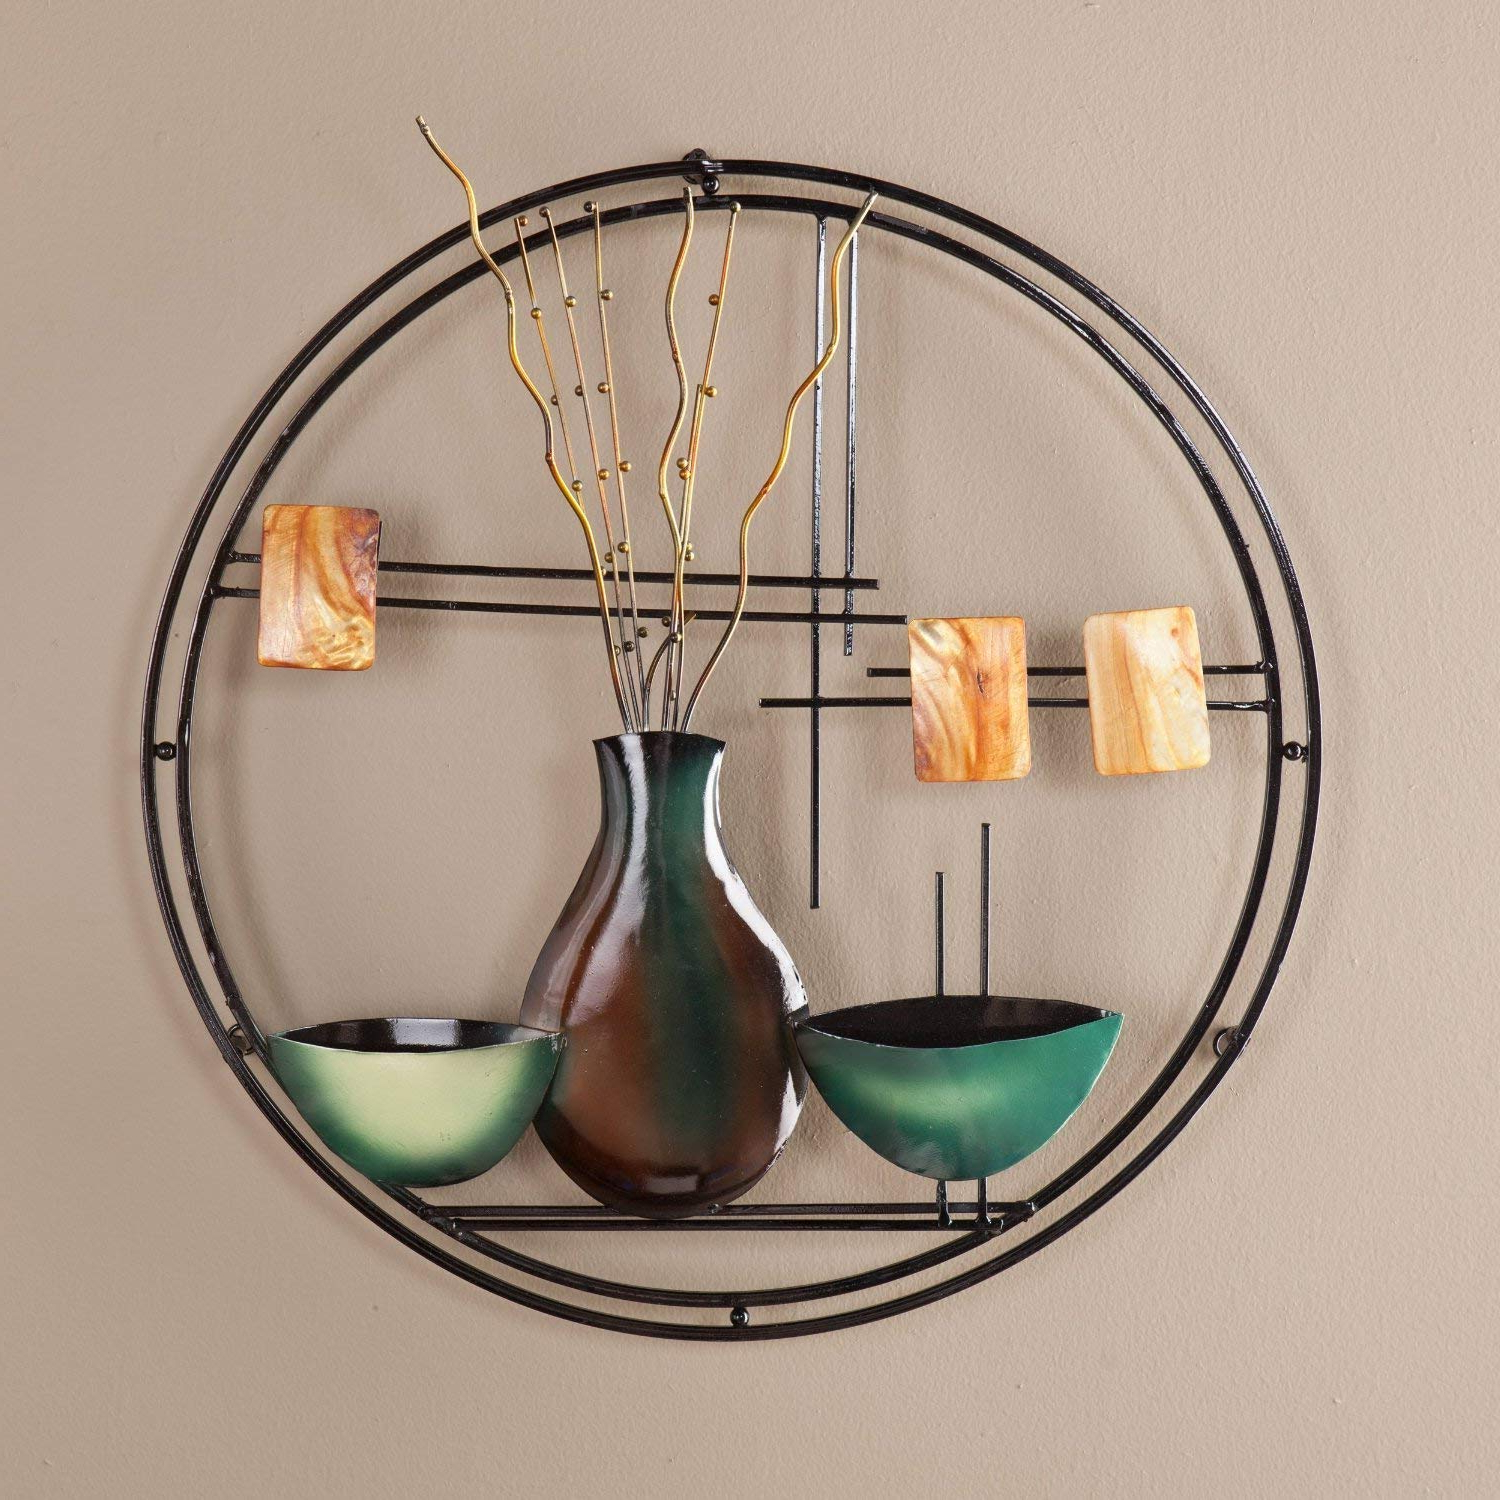 Trendy Vase And Bowl Wall Decor By Alcott Hill Throughout Amazon: Southern Enterprises Vase And Bowl Hanging Wall Art (Gallery 4 of 20)